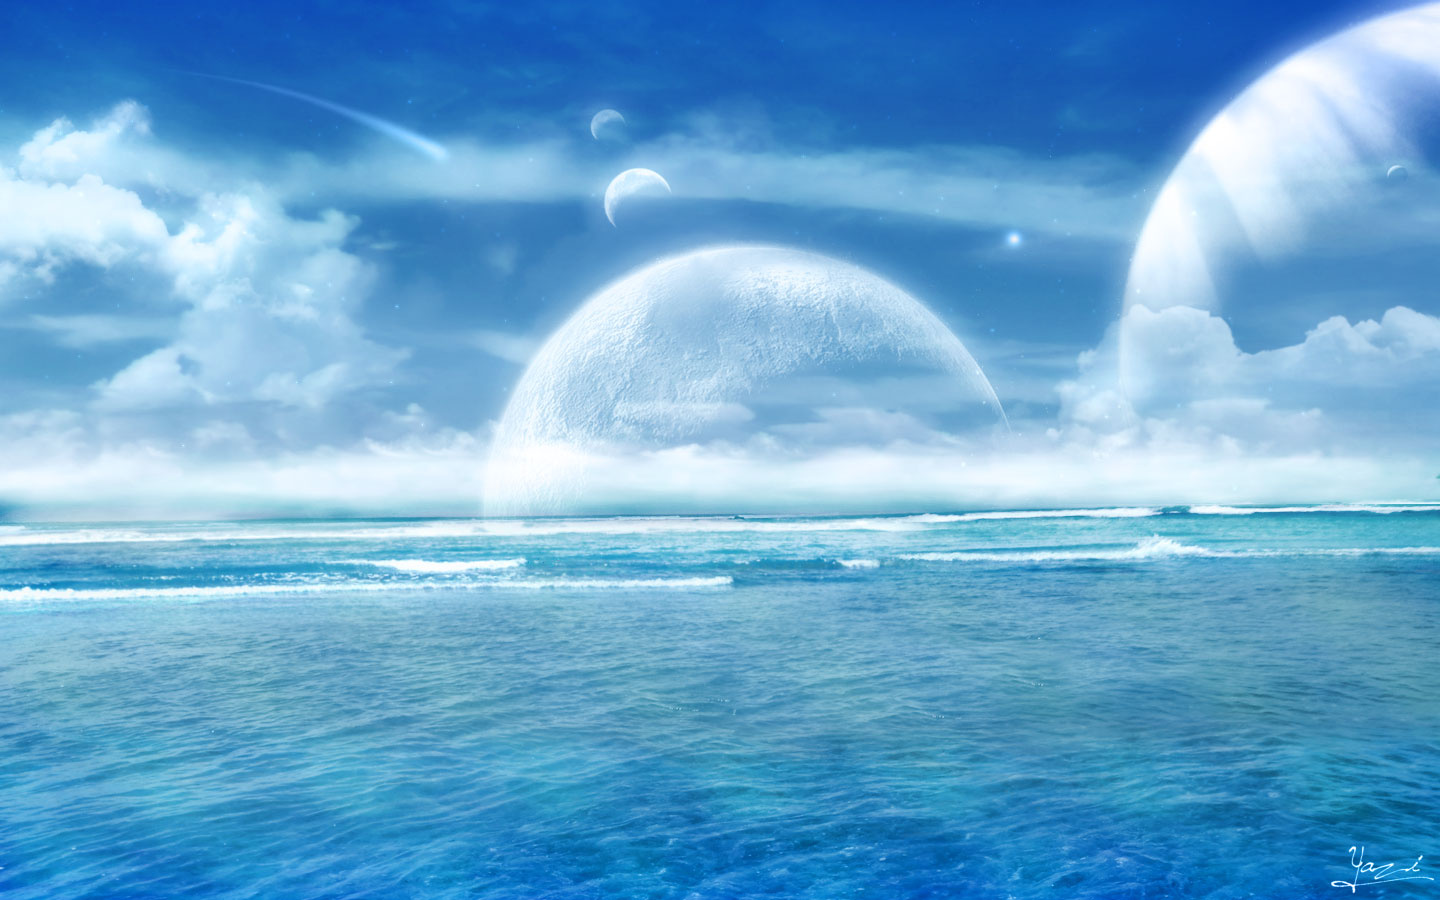 Magical Ocean Horizon Widescreen Wallpaper Hd Wide Desktop Background 1440x900